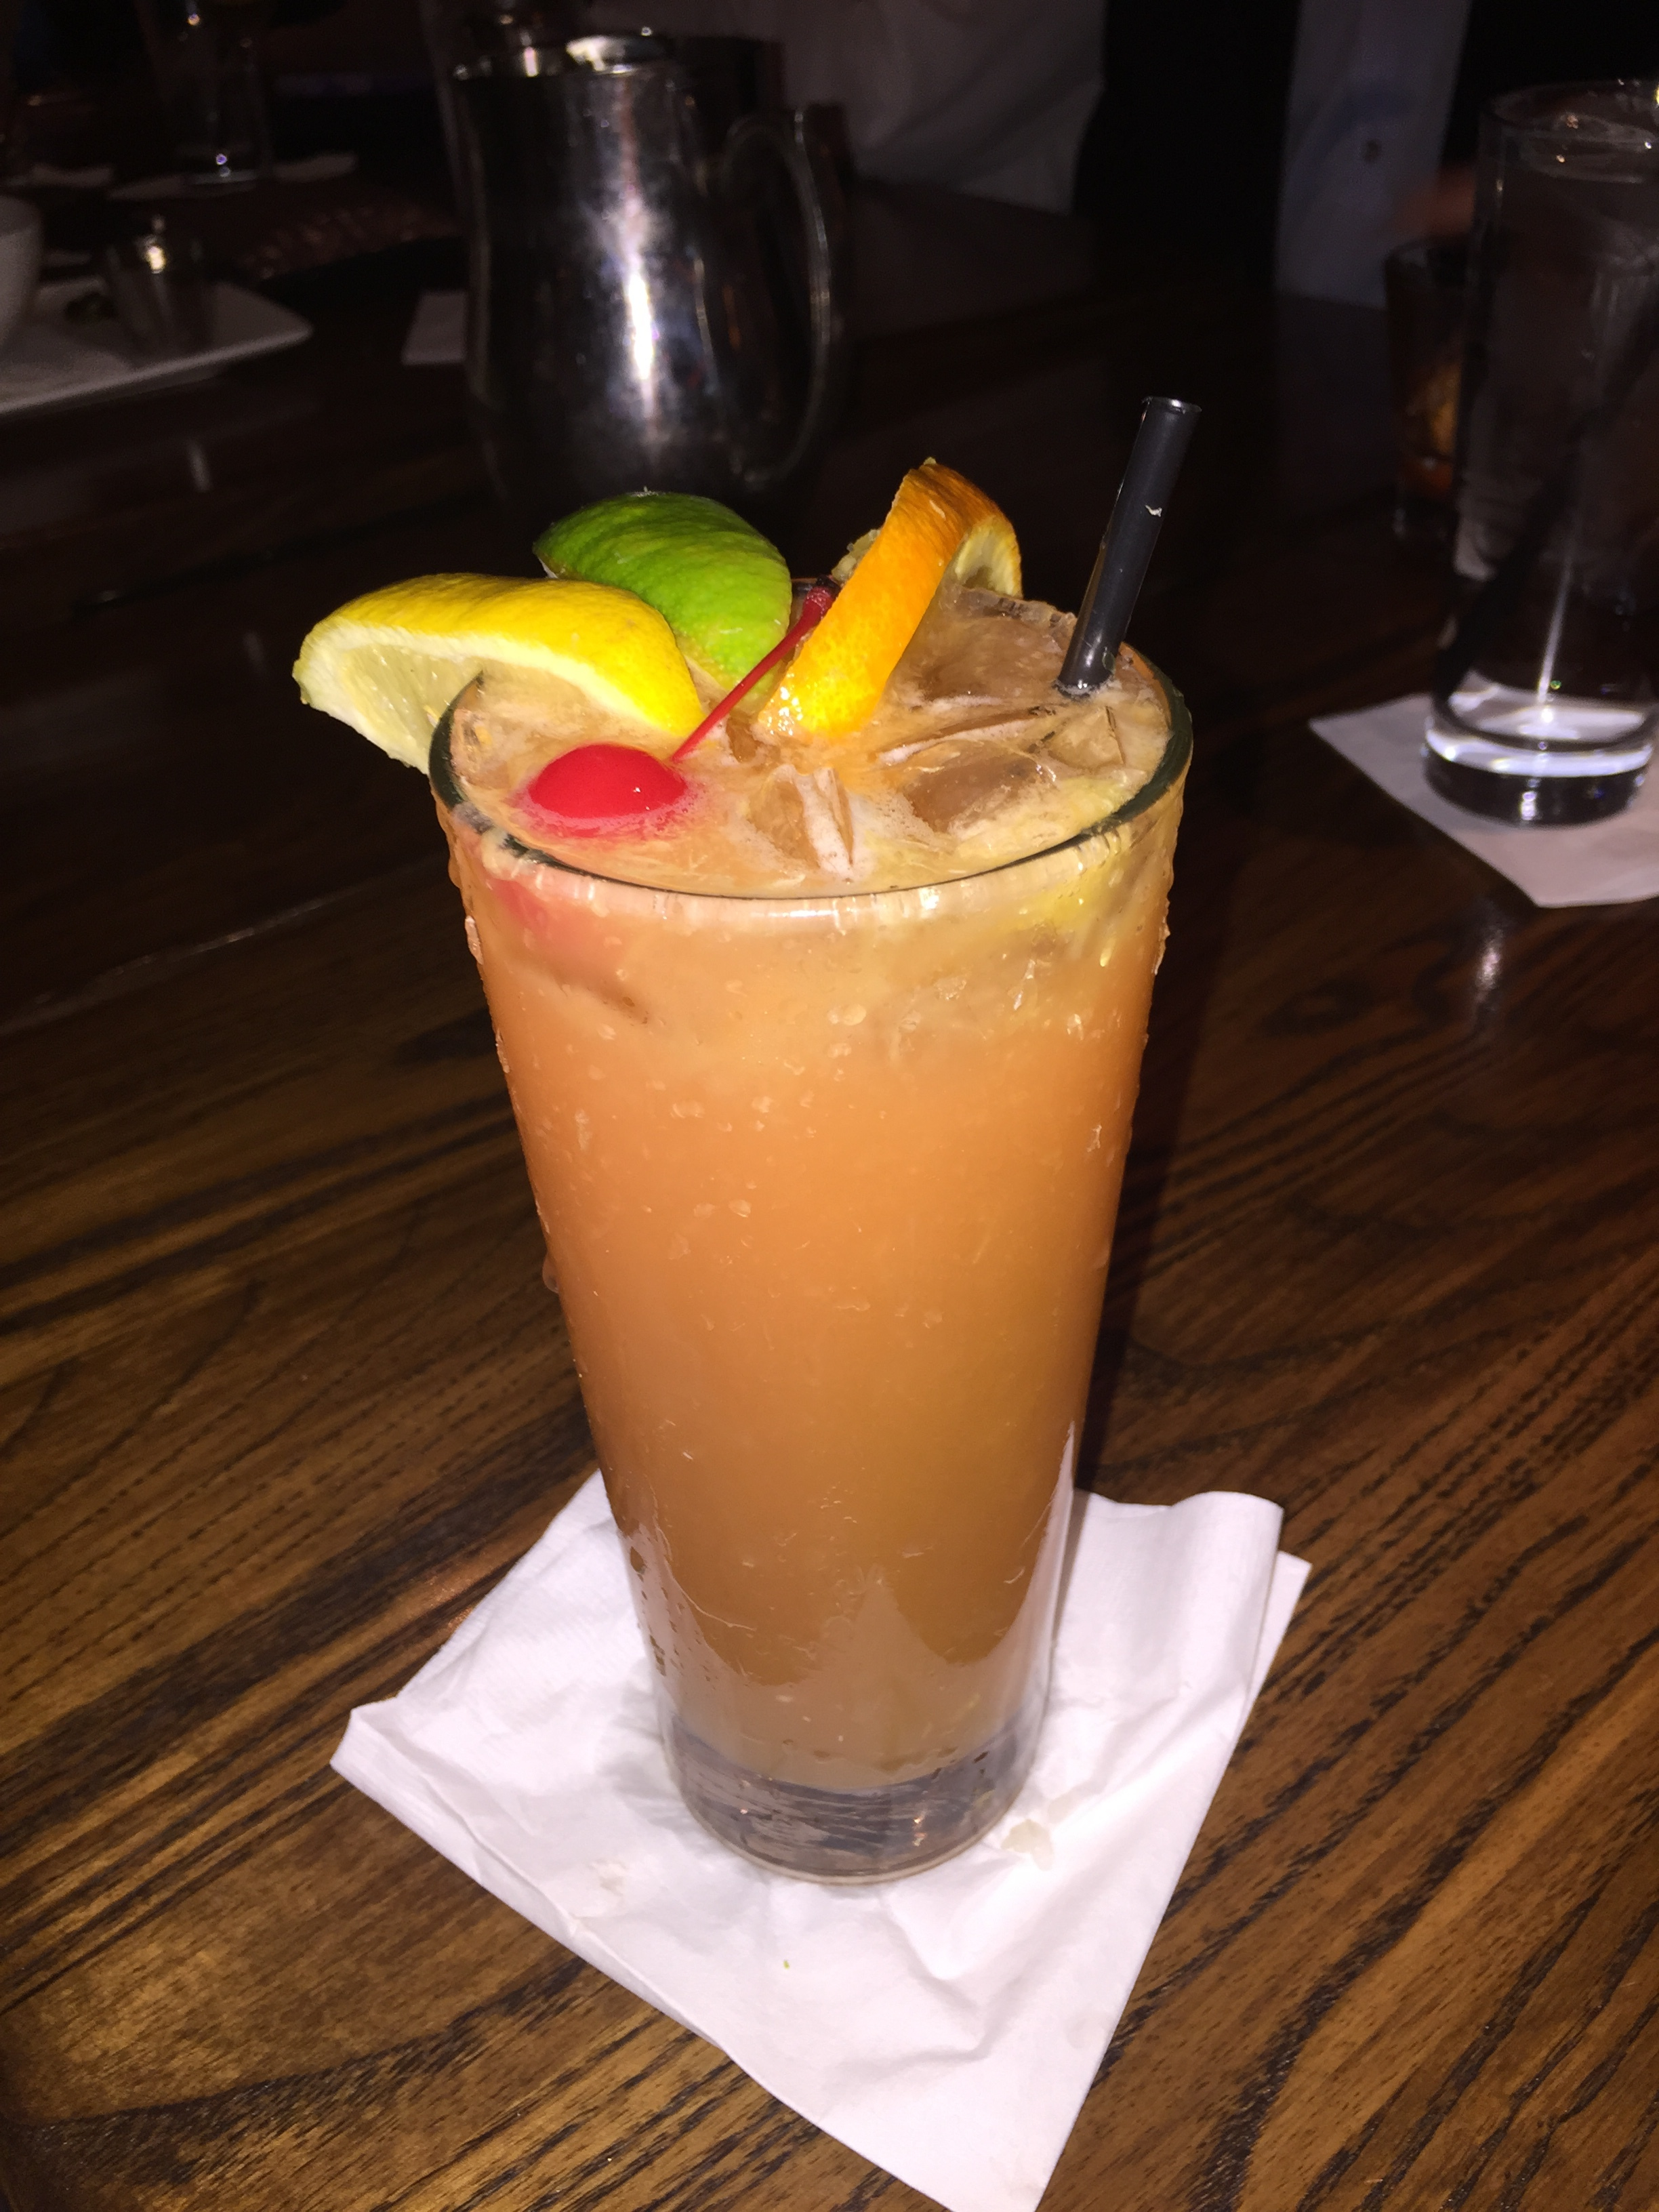 I started with a Tropical Long Island.